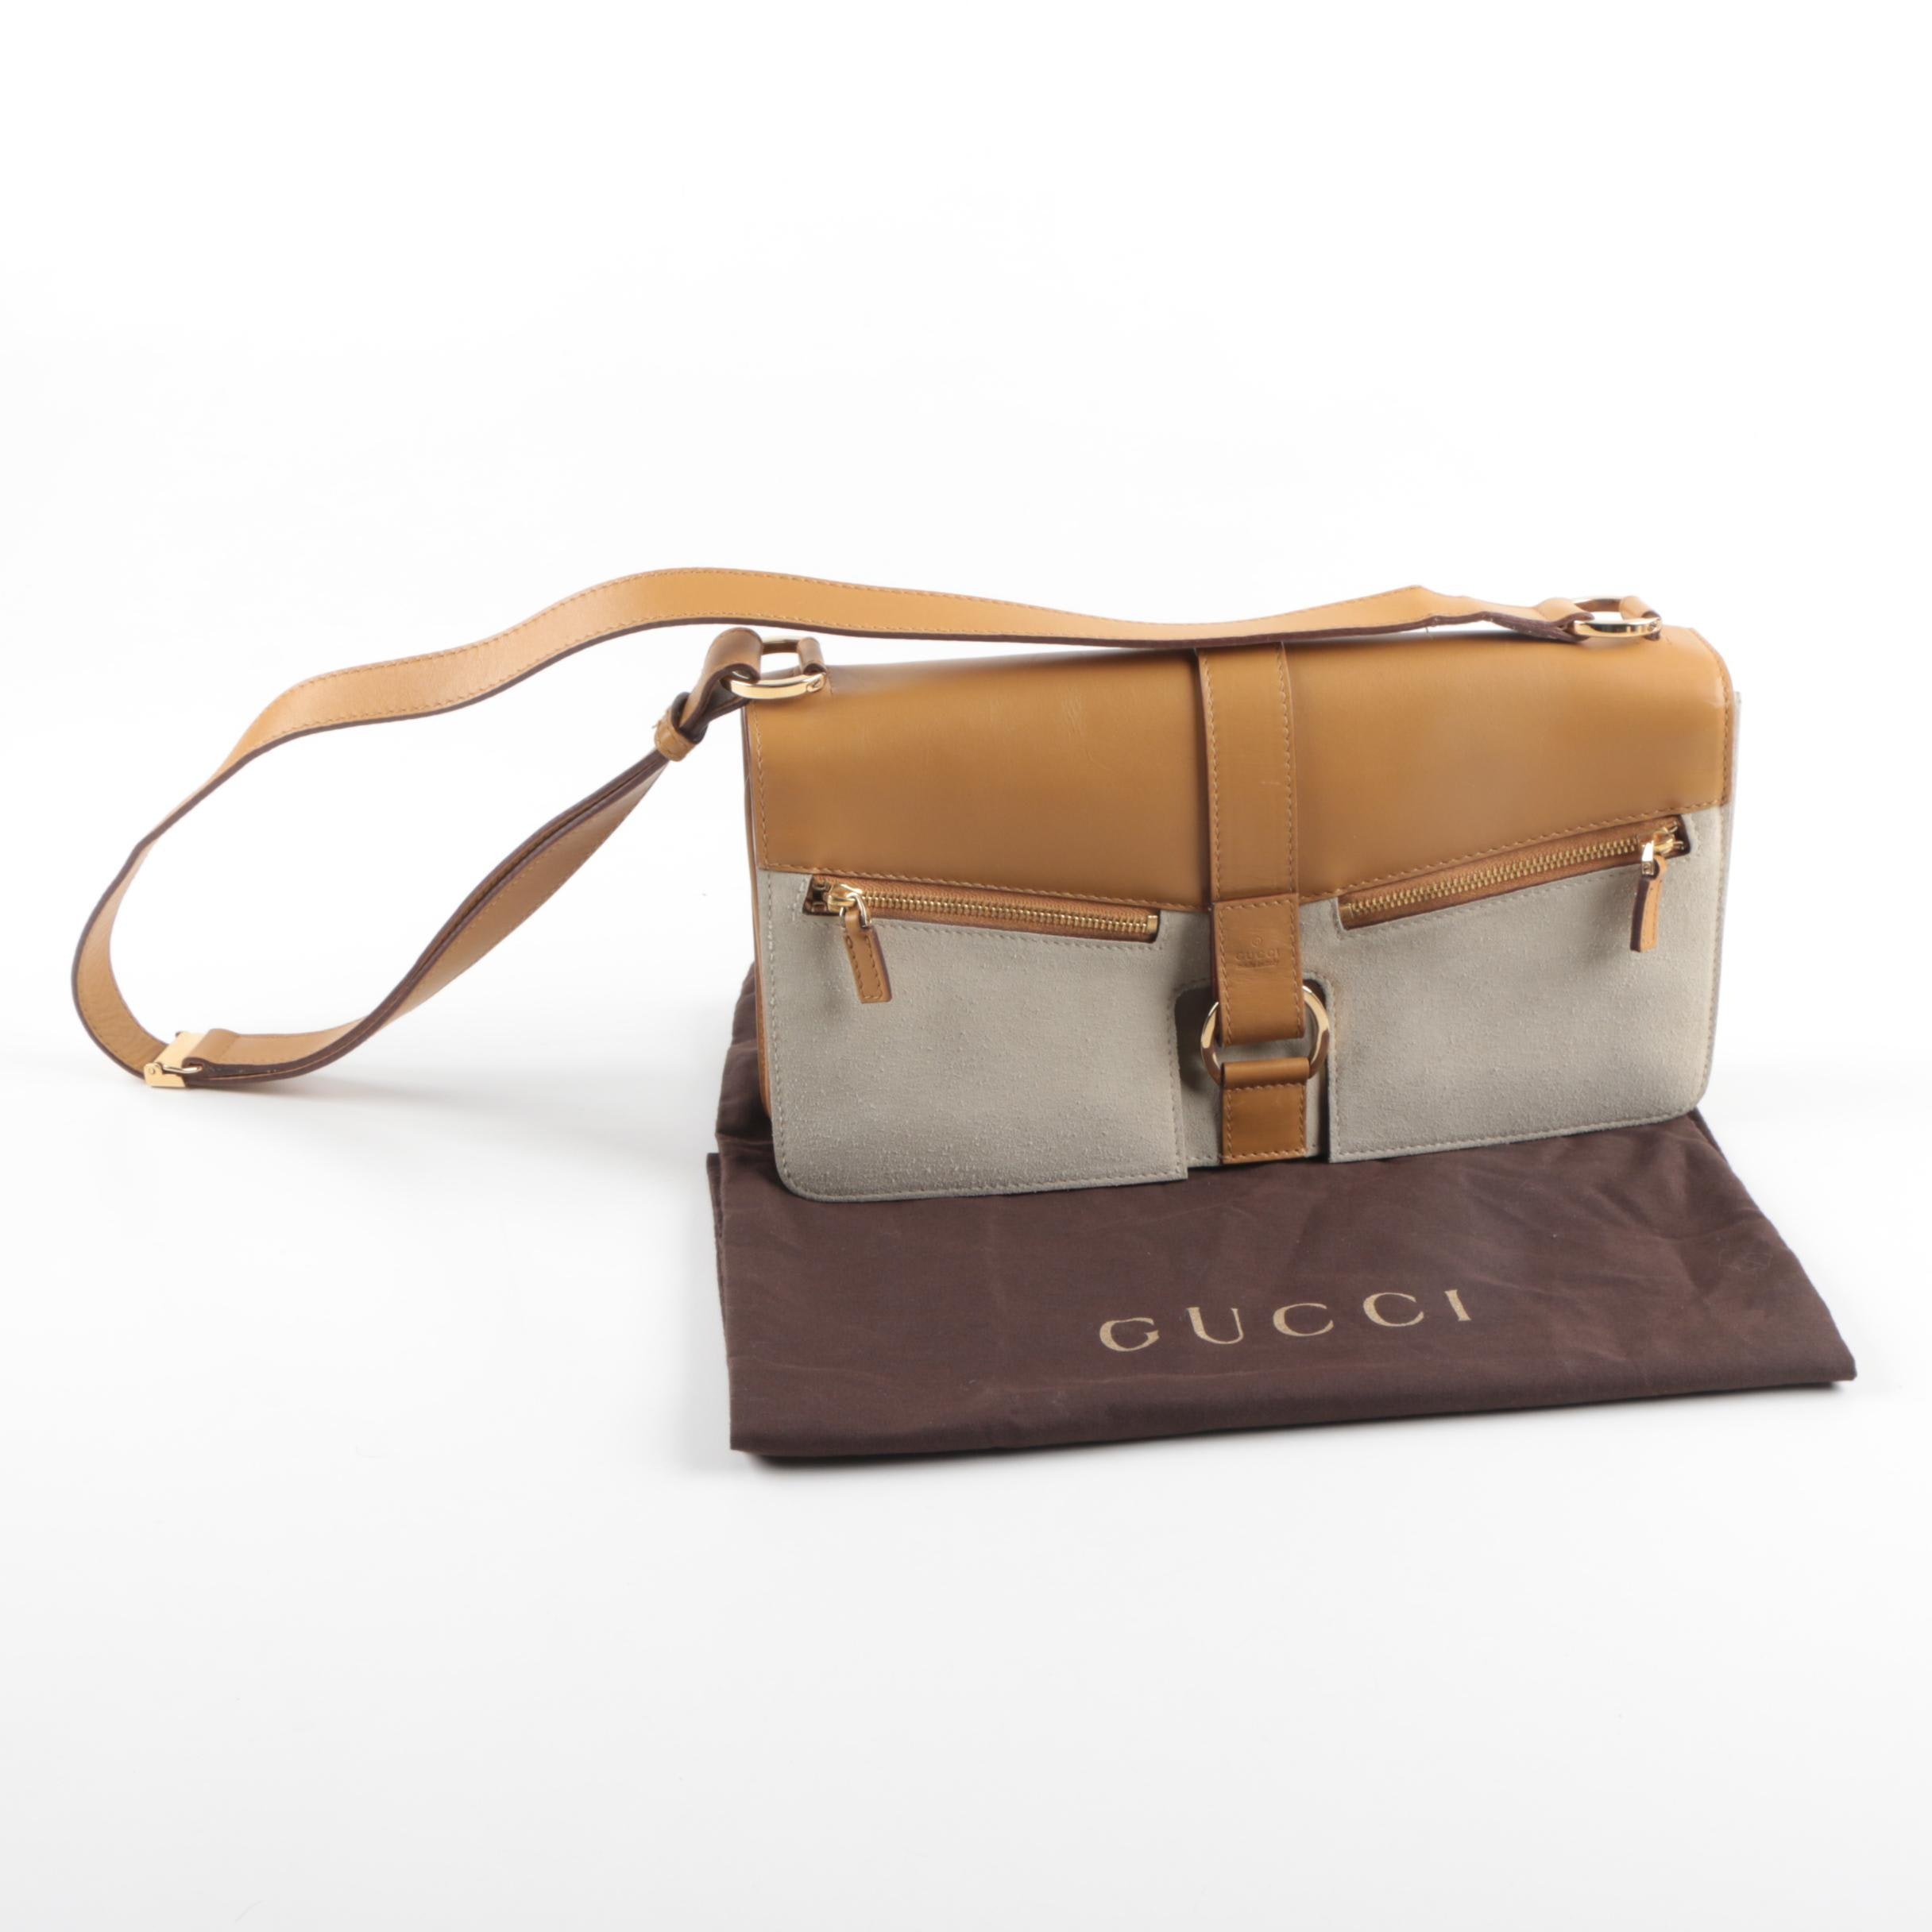 Gucci Leather and Suede Shoulder Bag